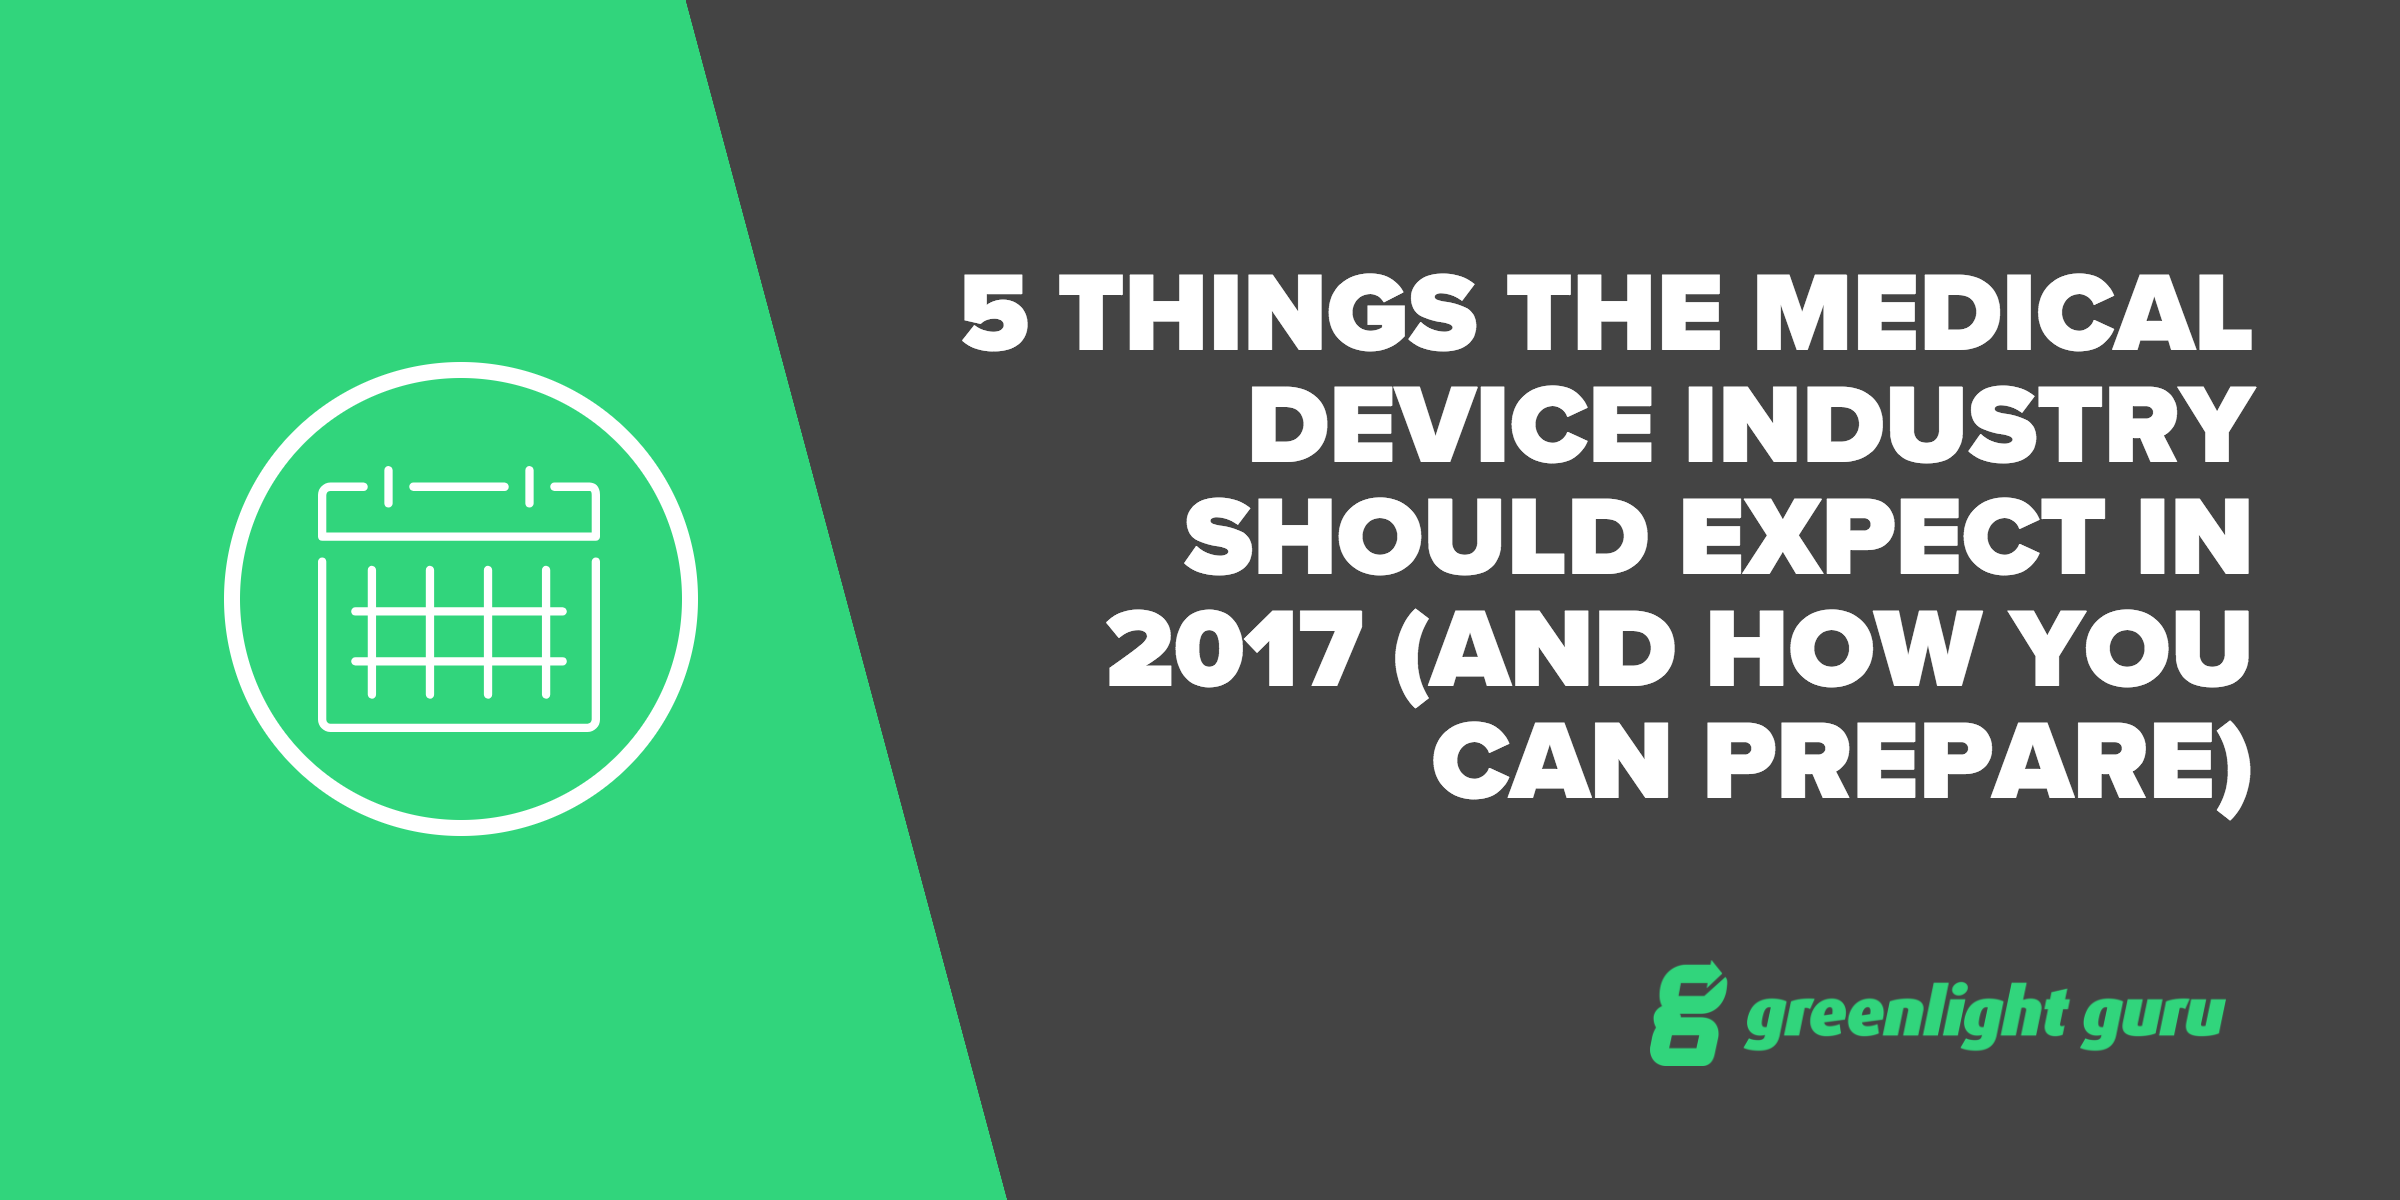 5 Things the Medical Device Industry Should Expect in 2017 (And How You Can Prepare) - Featured Image